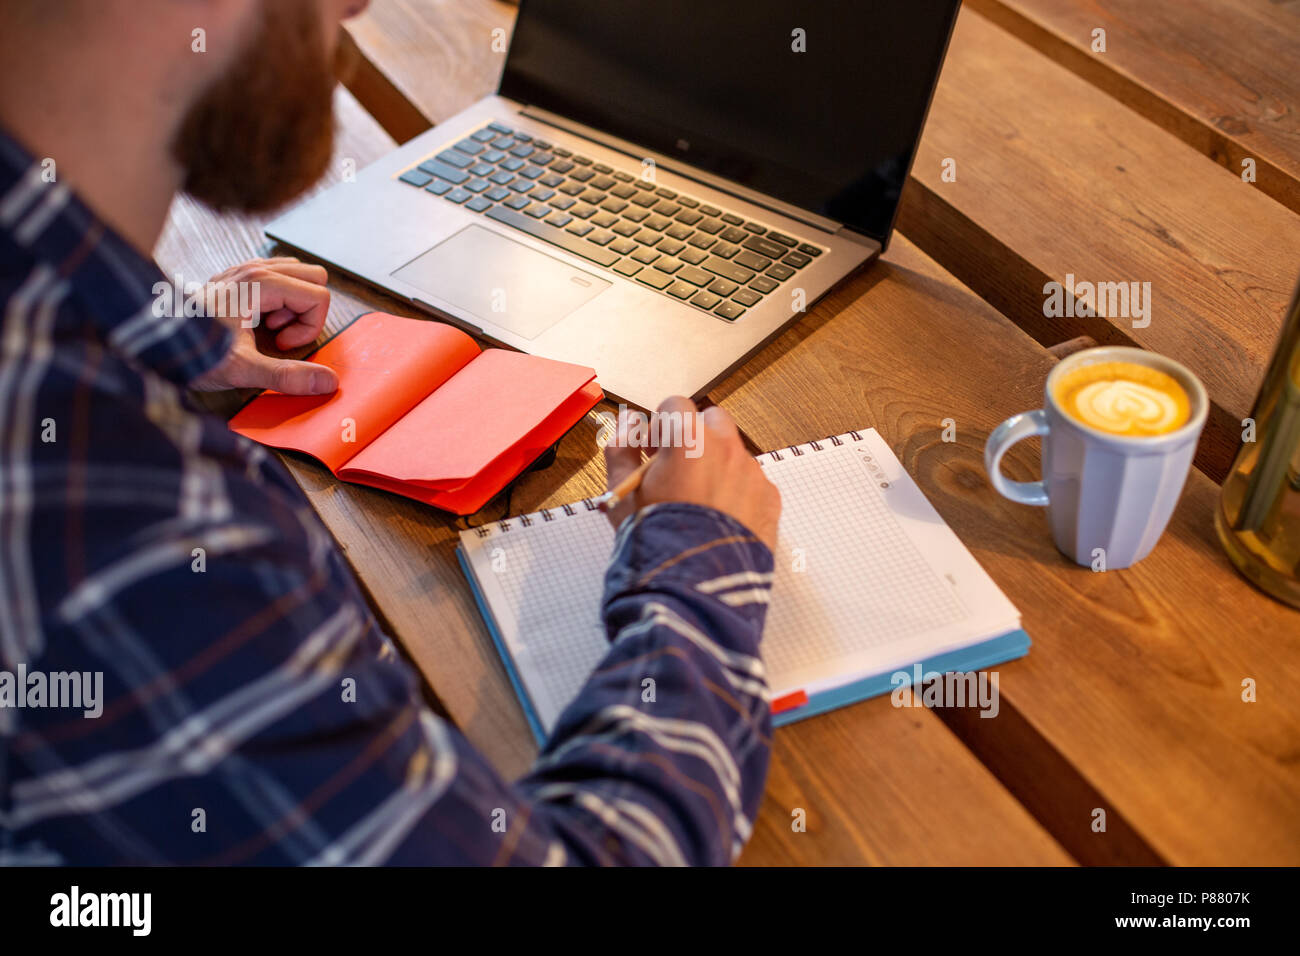 Cropped image of casual business man or freelancer planning his work on notebook, working on laptop computer with smart phone, cup of coffee on table at coffee shop or home office. - Stock Image